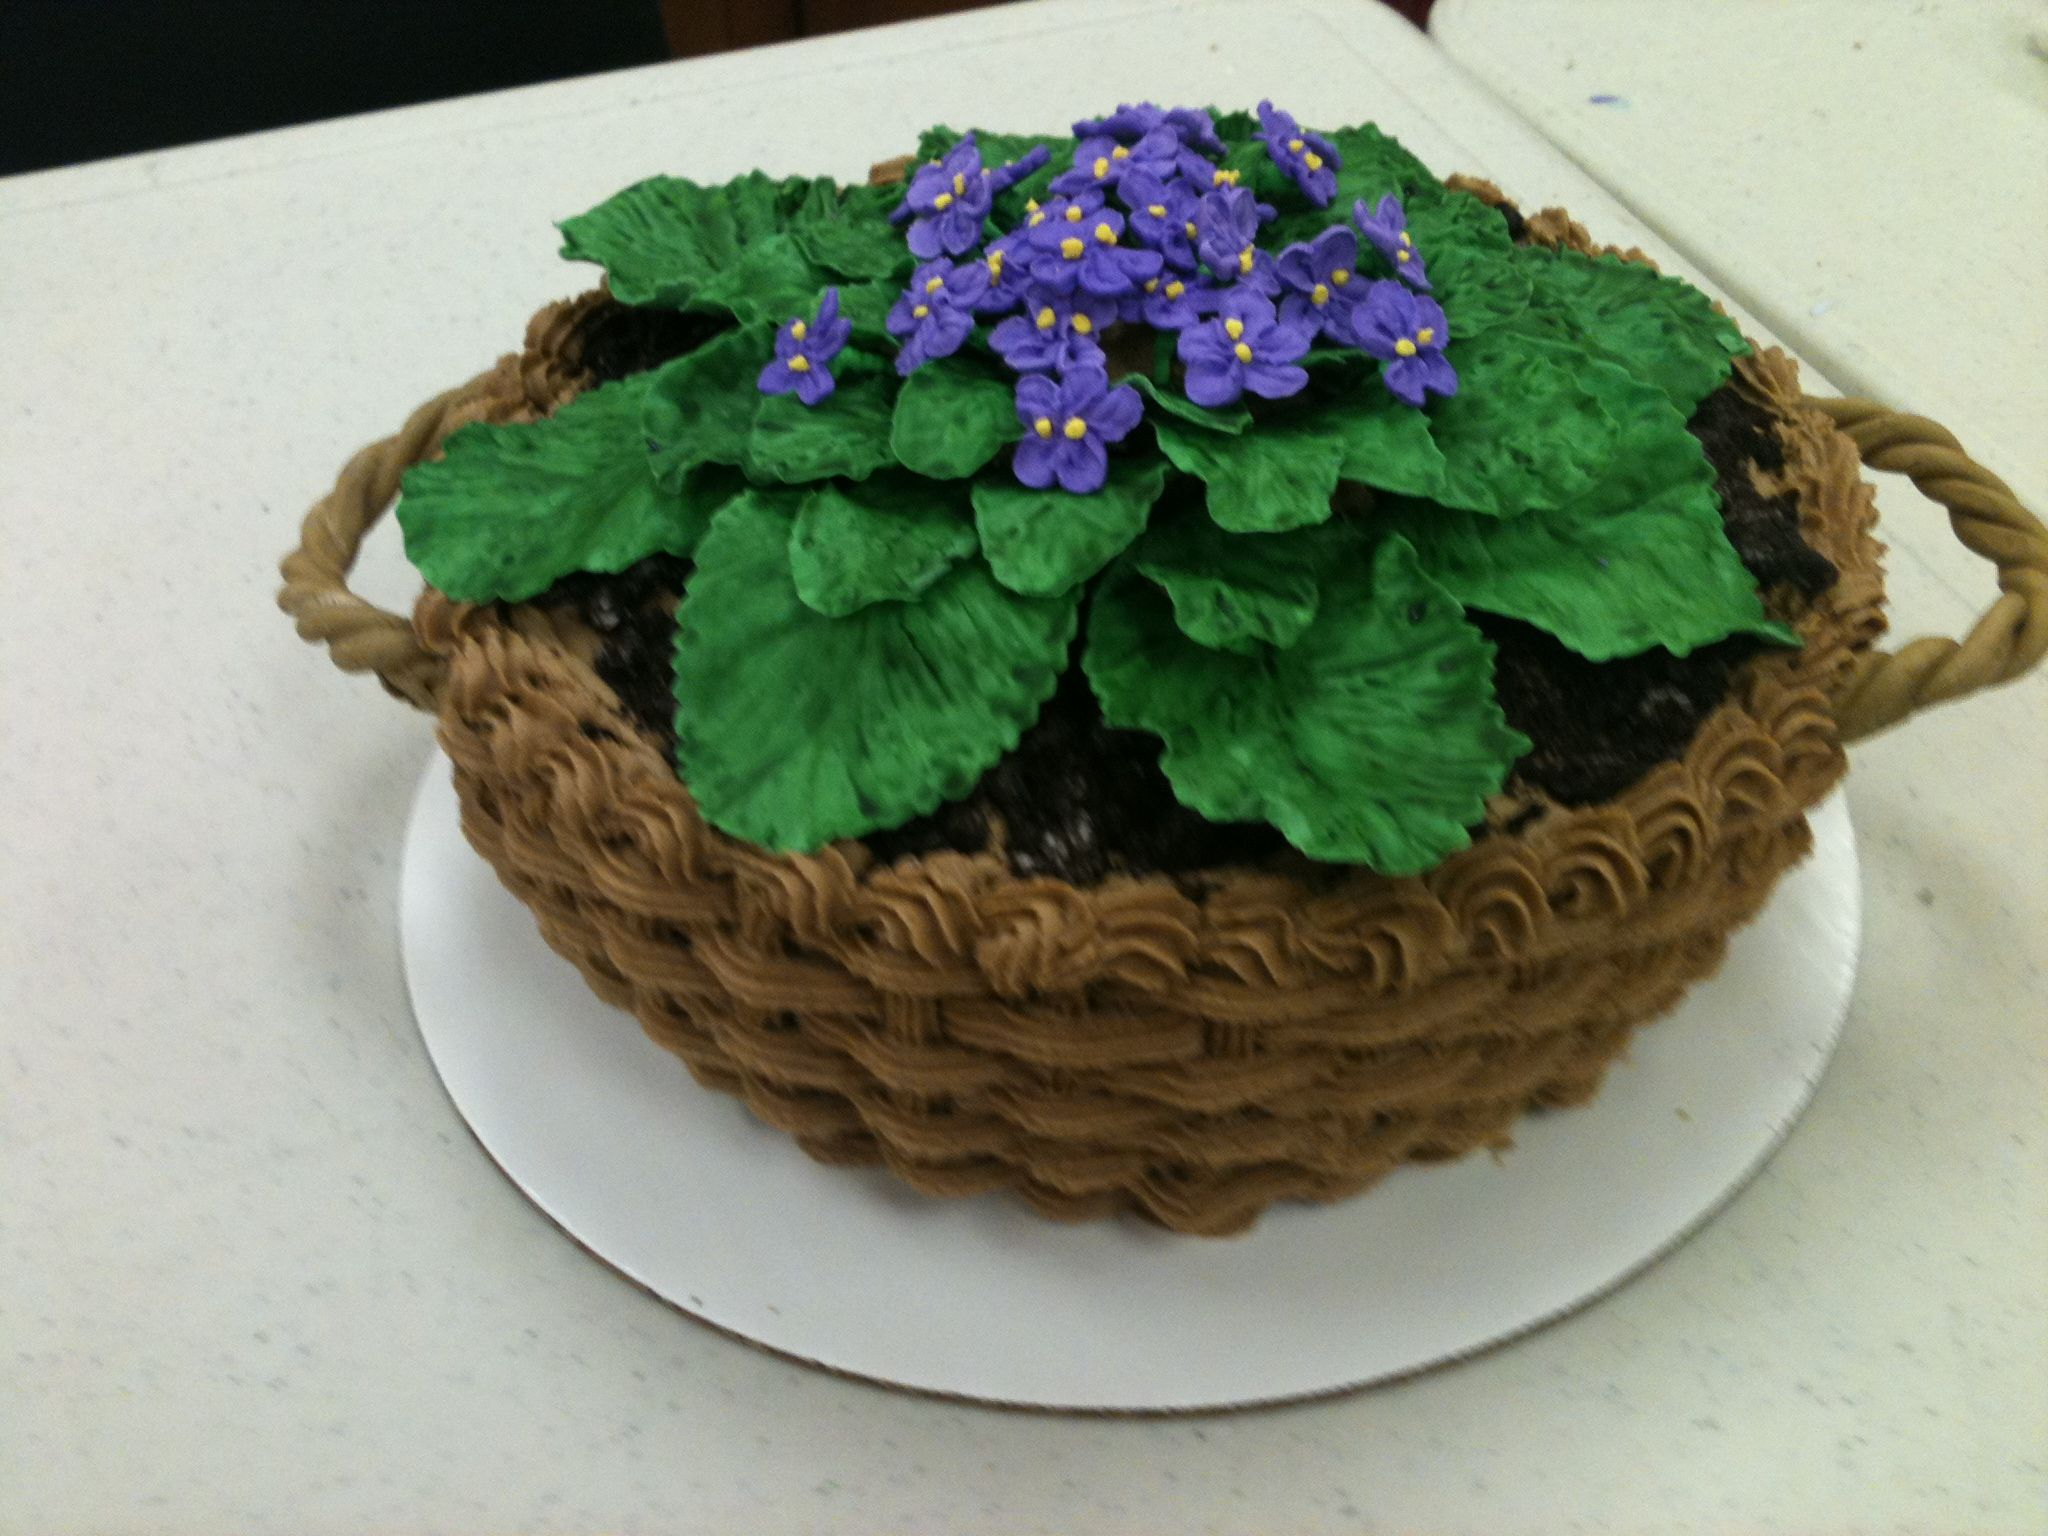 This Is An African Violet Cake I Used The Basket Weave Technique